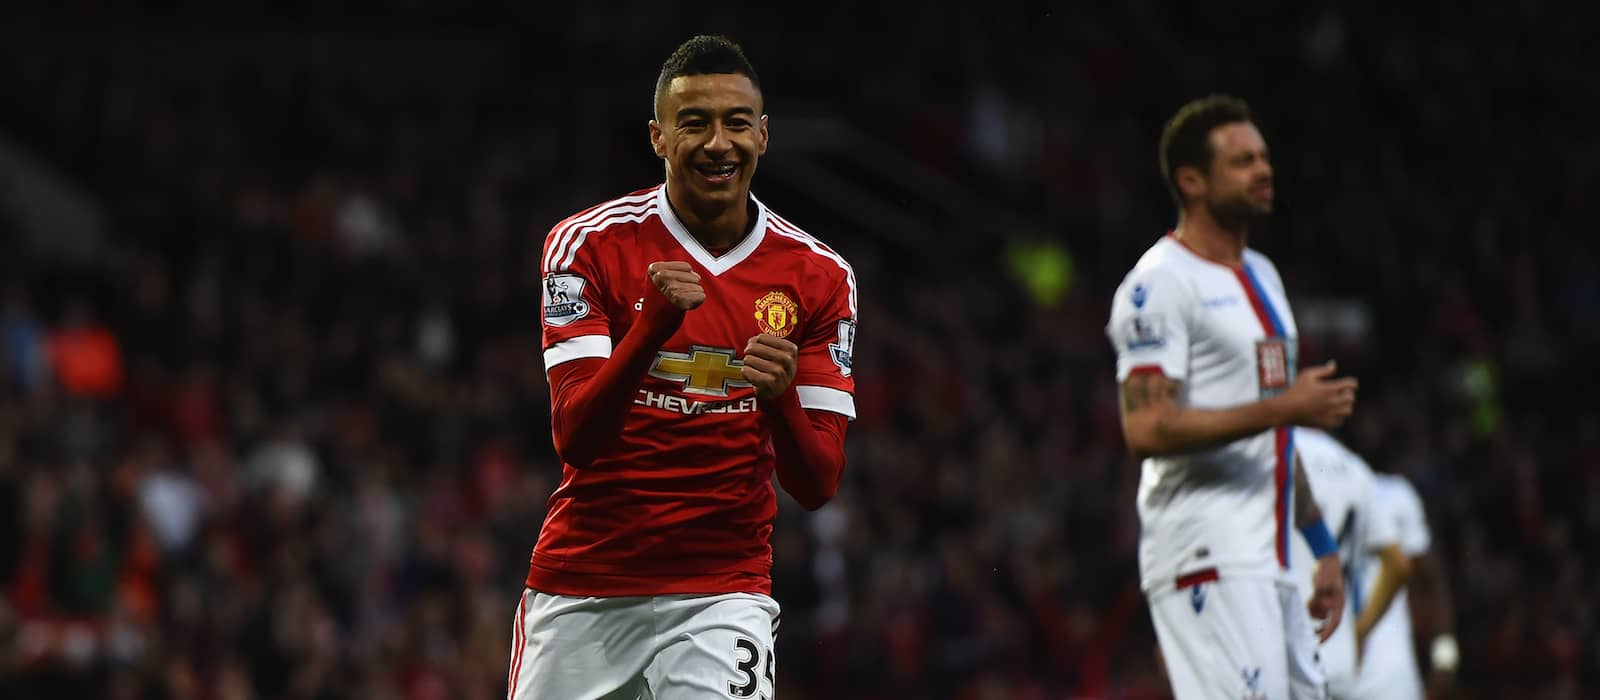 Jesse Lingard opens up about his breakthrough into Man United's first-team